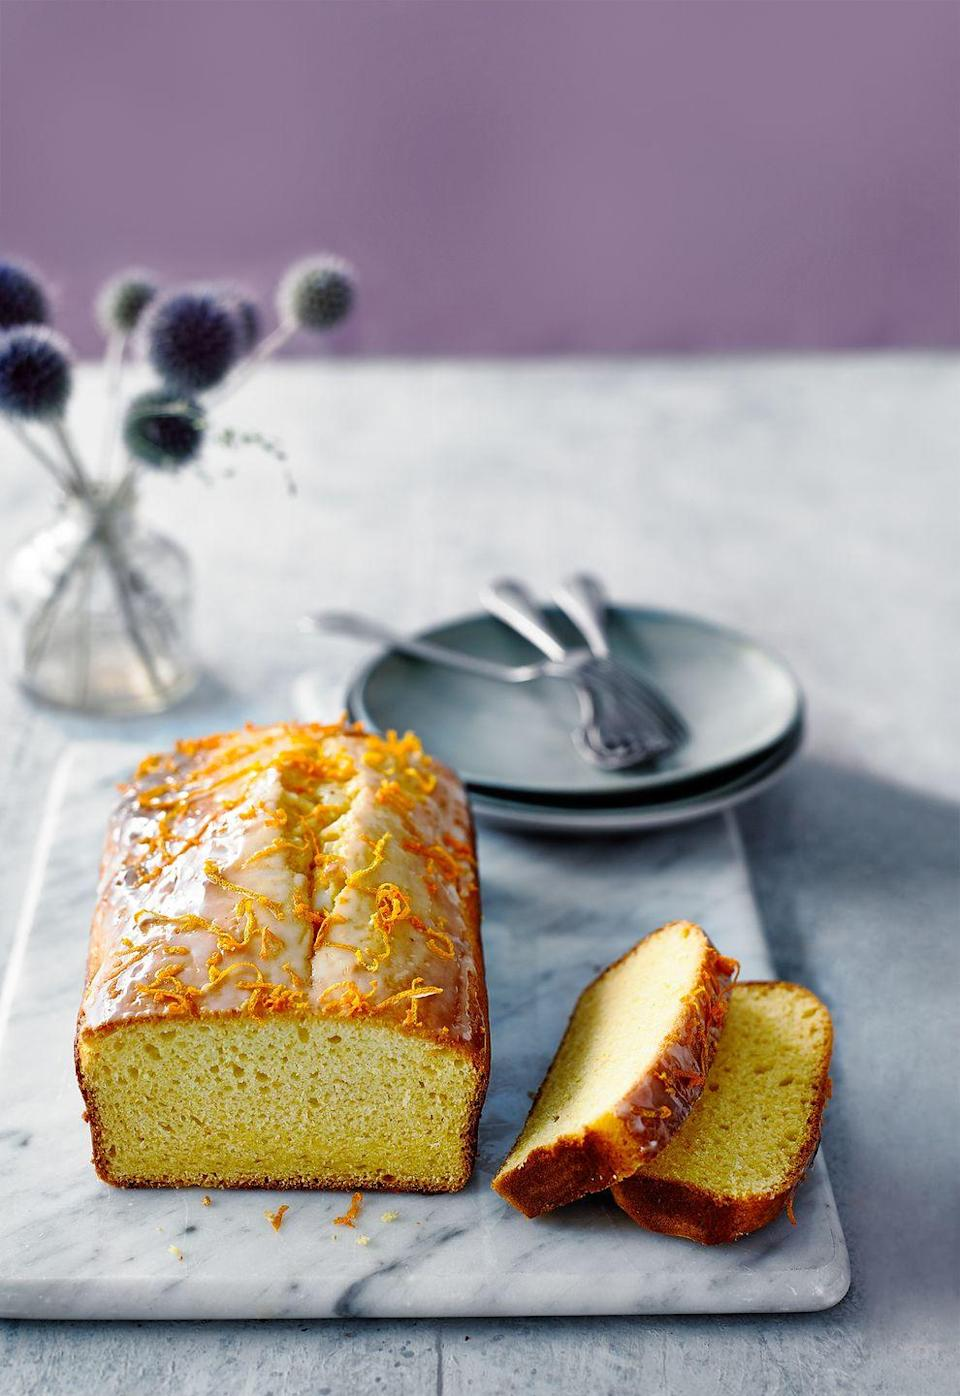 """<p>This cake recipe only needs three ingredients and it's also egg-free.</p><p><strong>Recipe: <a href=""""https://www.goodhousekeeping.com/uk/food/recipes/a26943247/orange-loaf-cake/"""" rel=""""nofollow noopener"""" target=""""_blank"""" data-ylk=""""slk:Three-ingredient Orange Loaf Cake"""" class=""""link rapid-noclick-resp"""">Three-ingredient Orange Loaf Cake</a></strong></p>"""